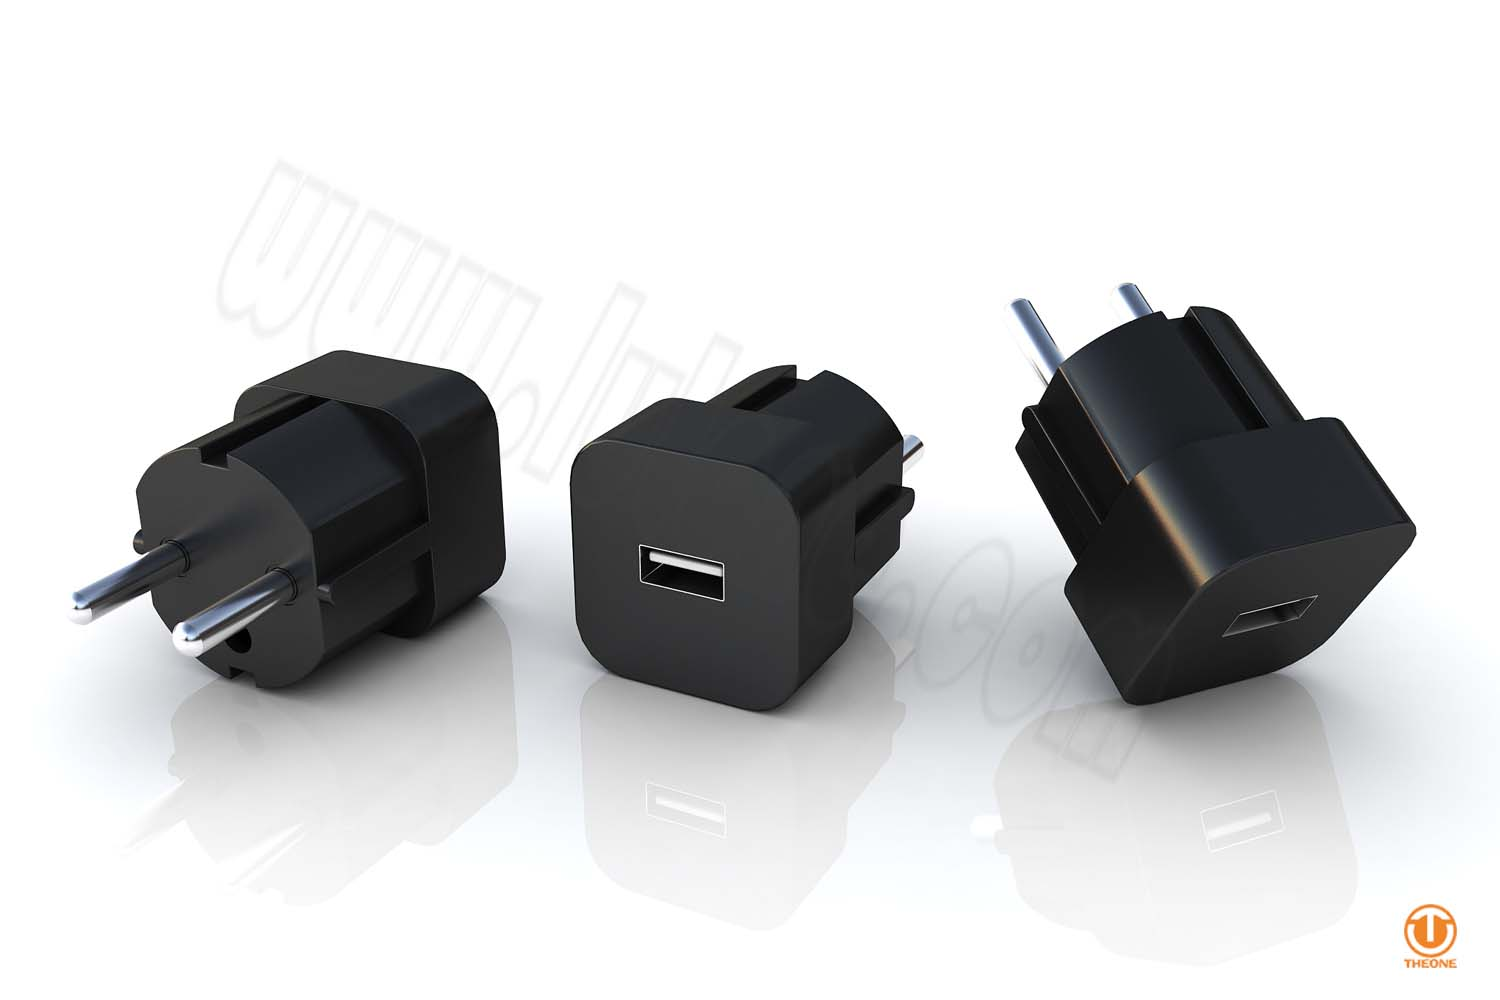 tc03b0-2 usb wall charger